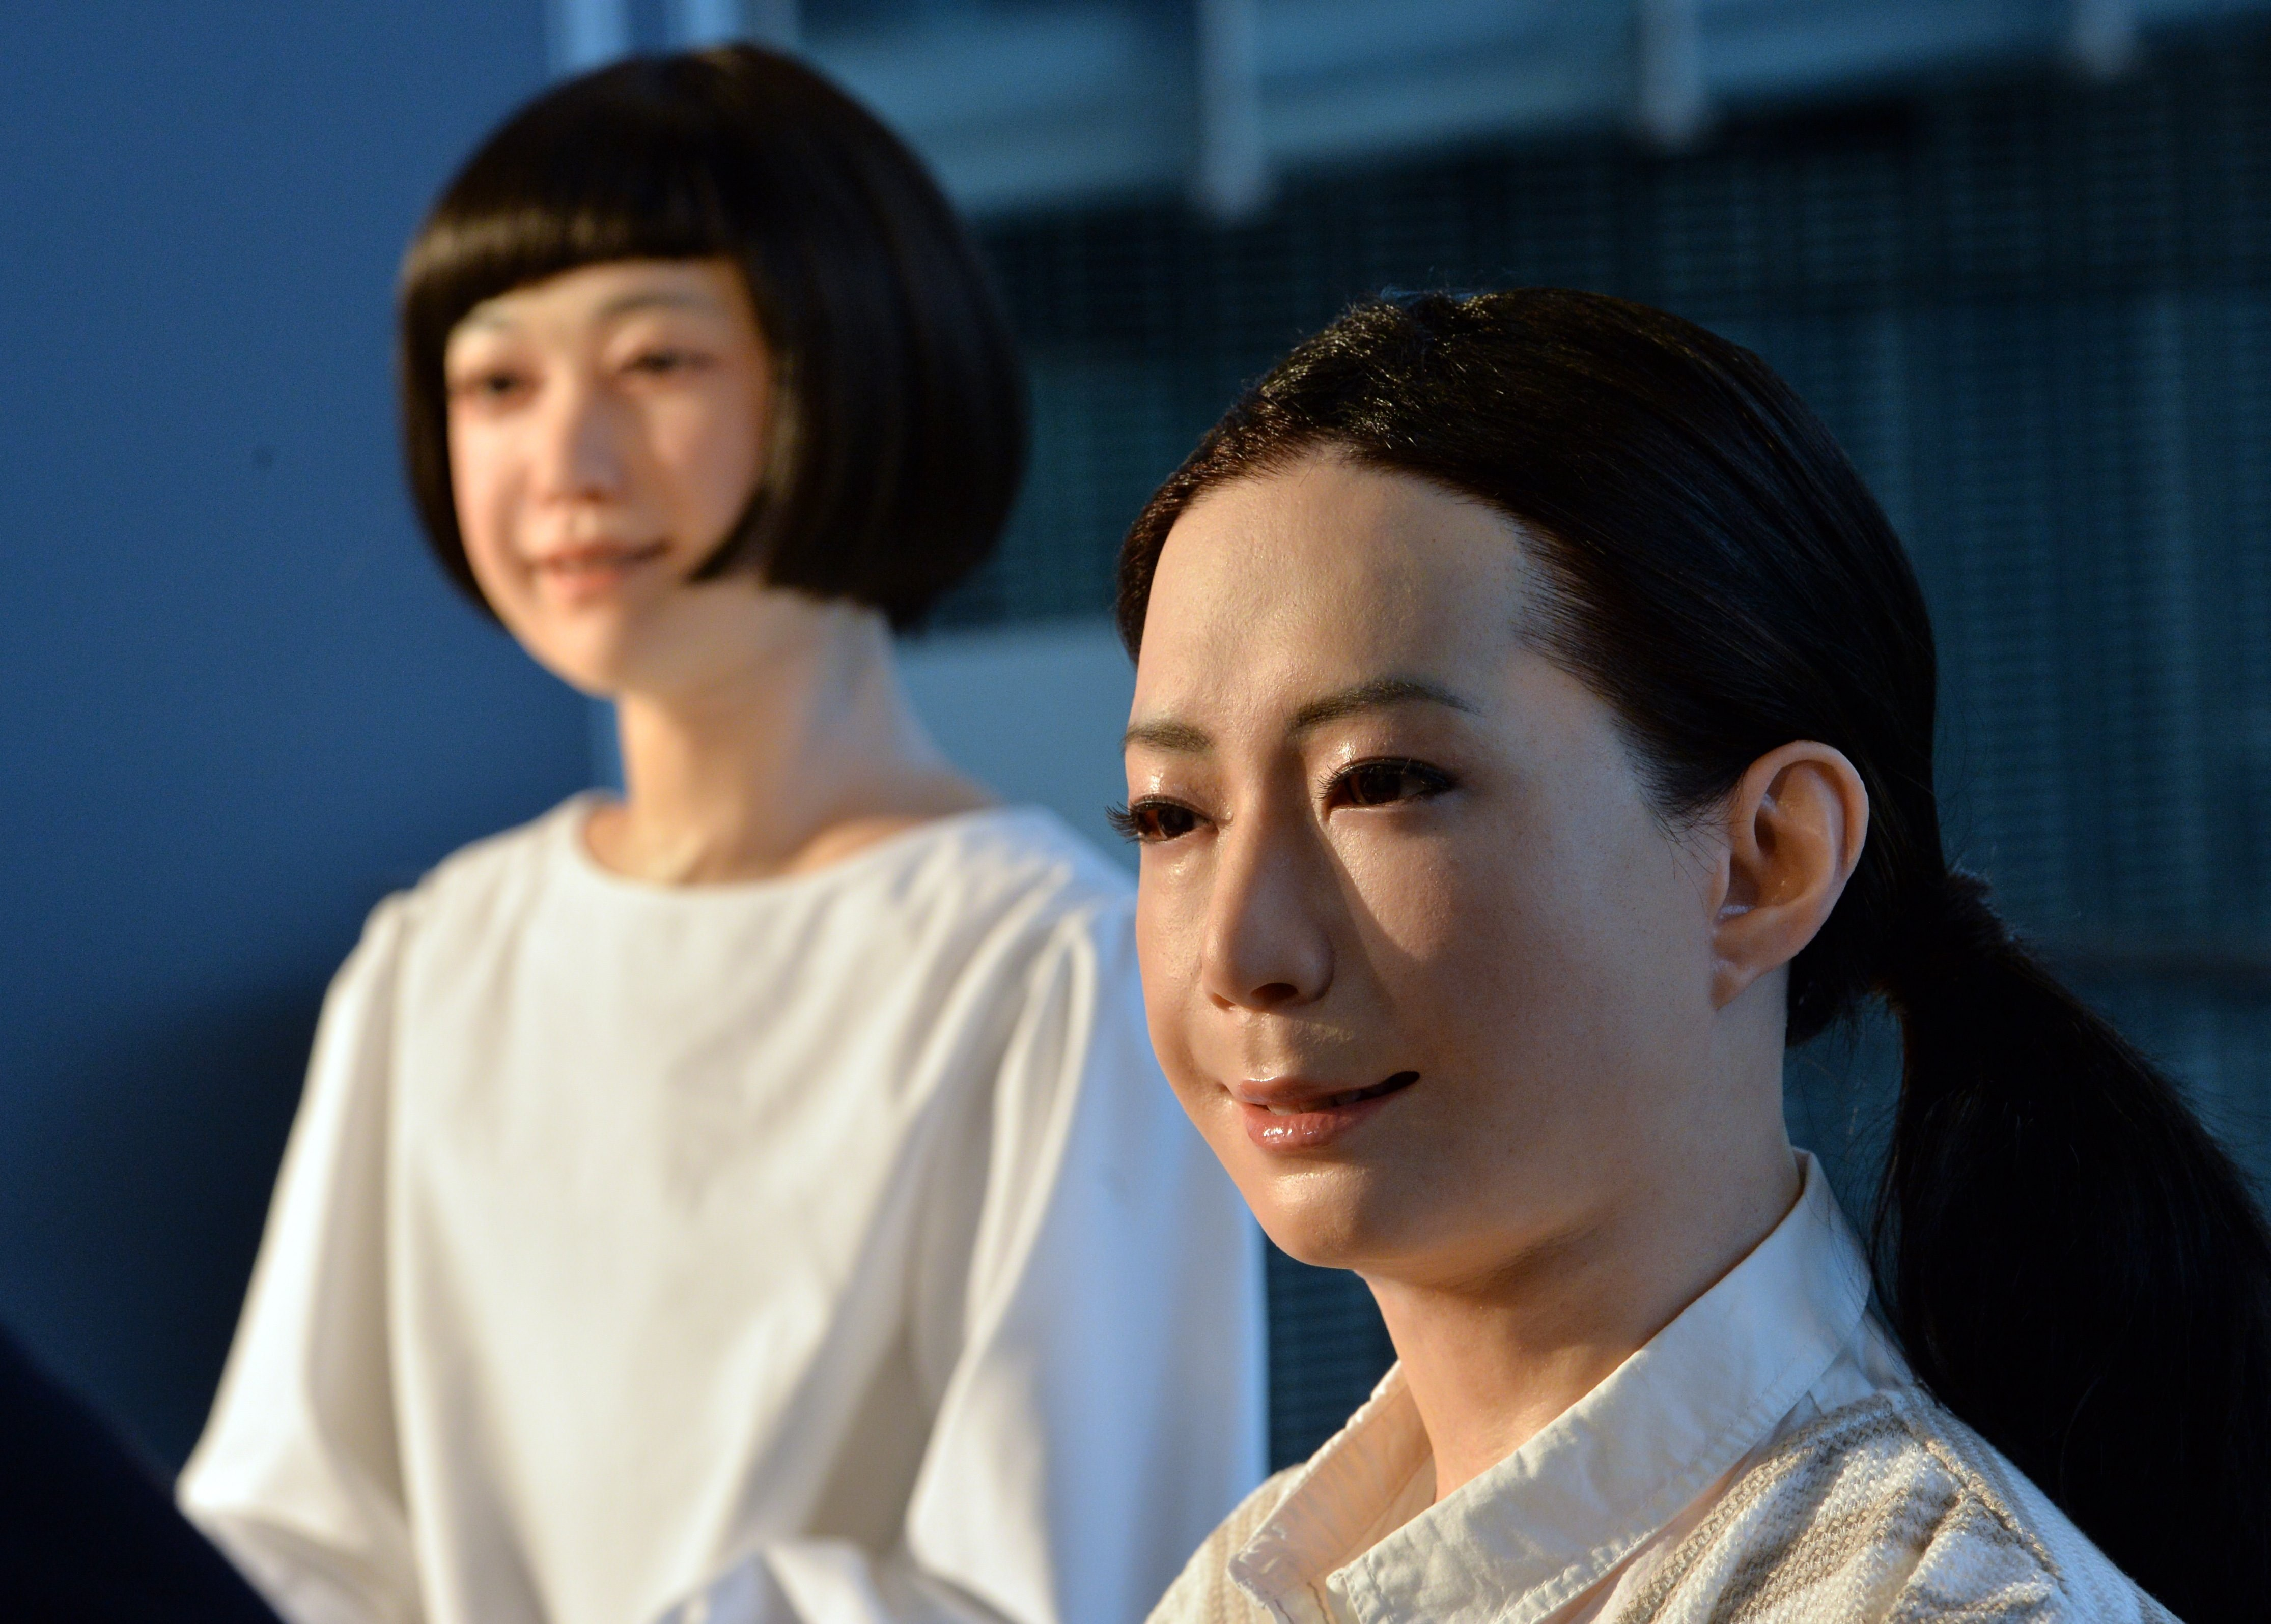 Japanese Scientist Builds Robots That Look Eerily Human Kids News Article